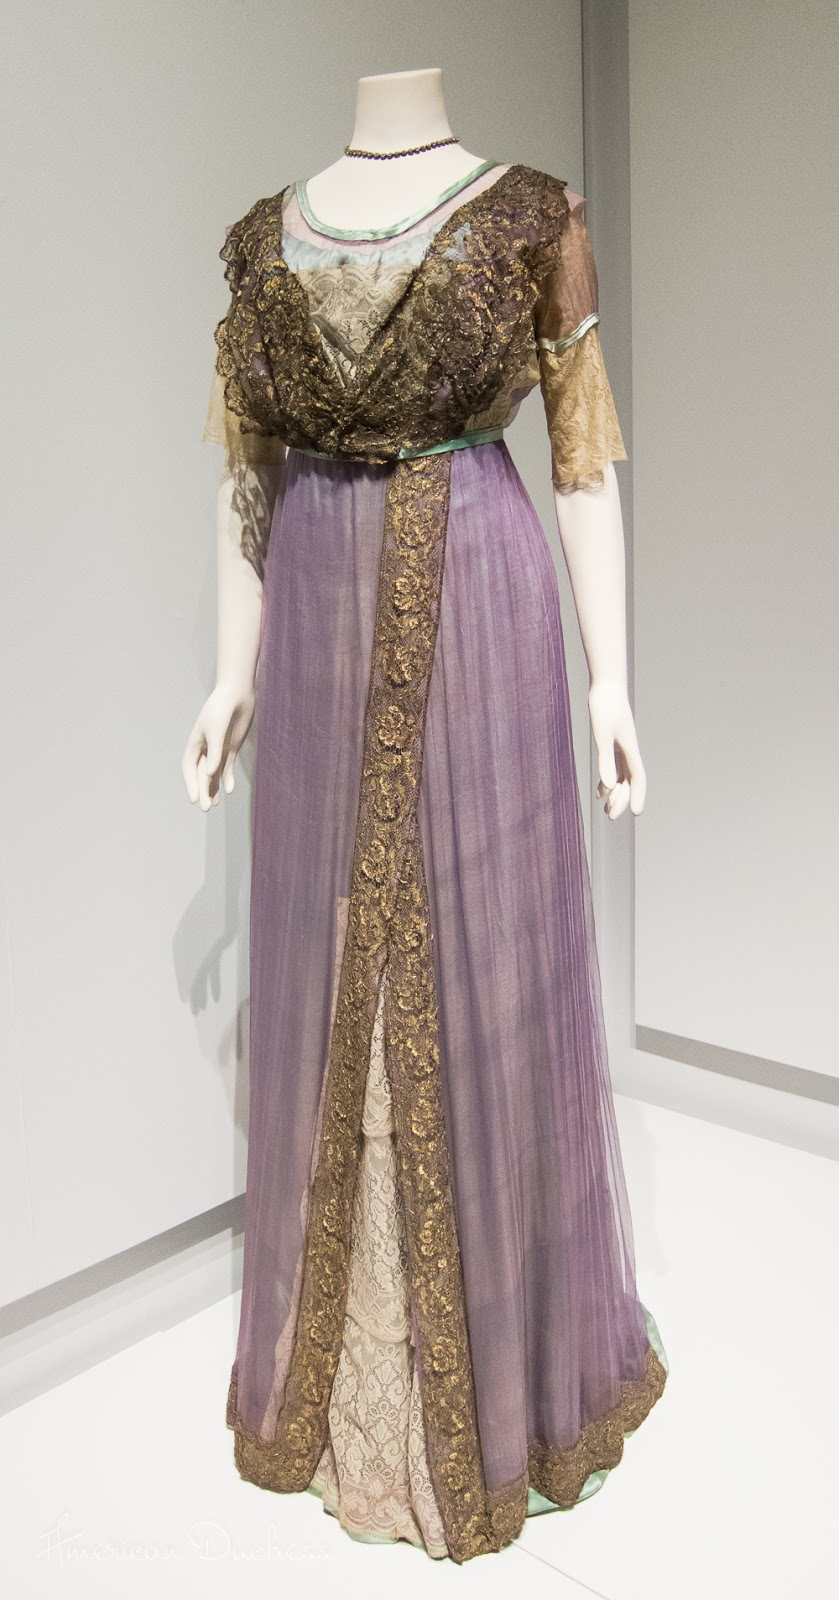 Gown, Liverpool, c. 1910-1912. Lady Lever Art Gallery